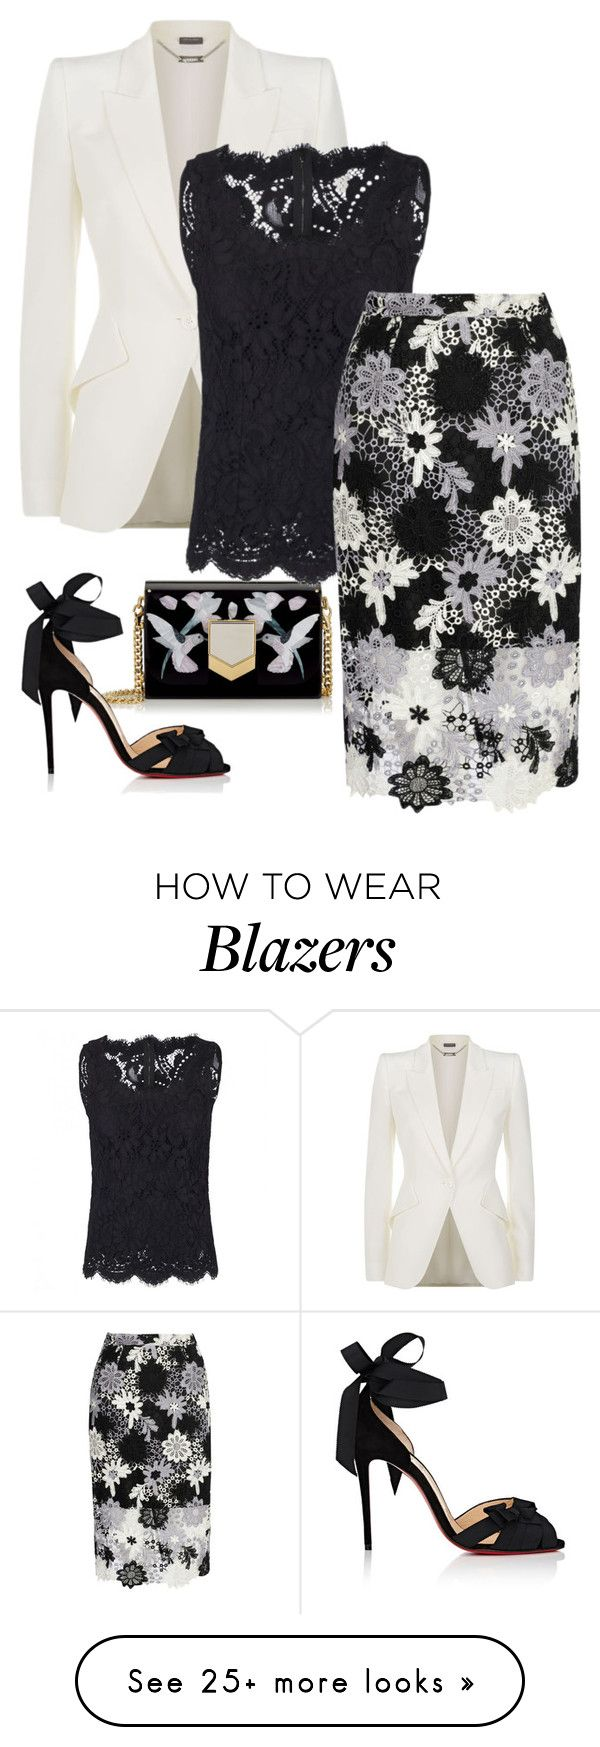 Untitled #155 by hisprincess2017 on Polyvore featuring Jimmy Choo, Alexander McQueen, Dolce&Gabbana, True Decadence and Christian Louboutin